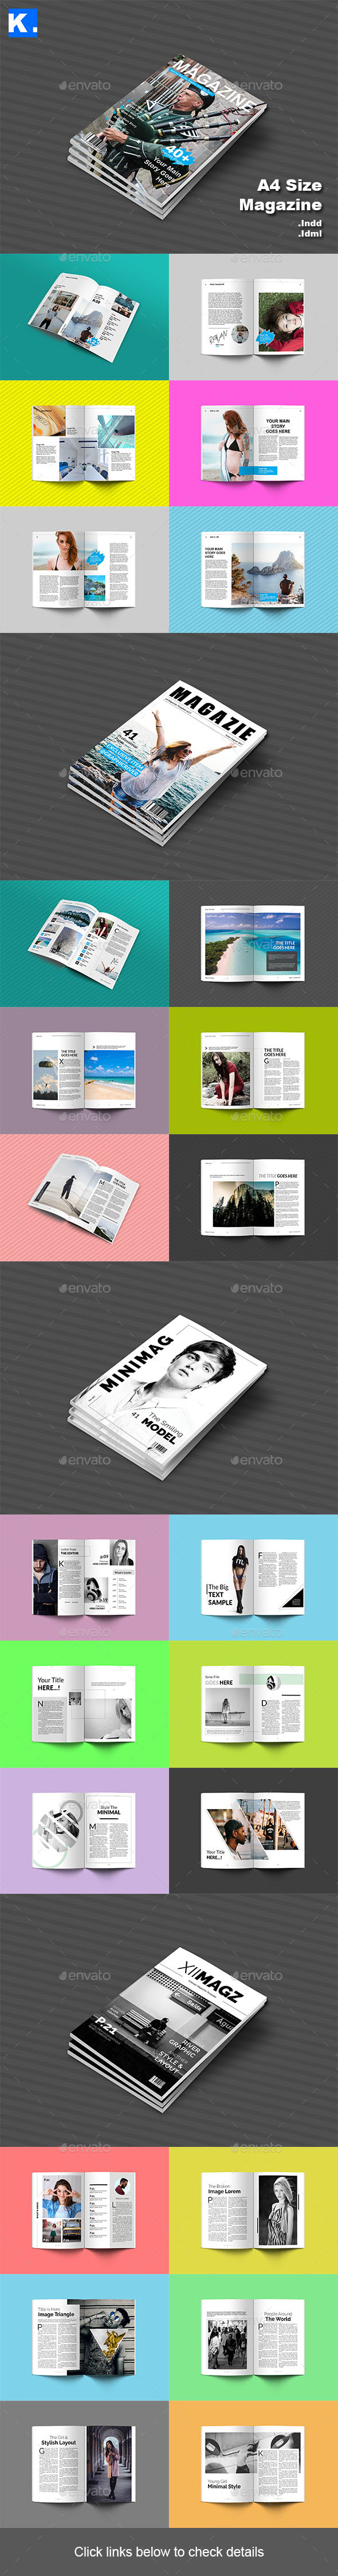 GraphicRiver Magazine Bundle 1 20989787